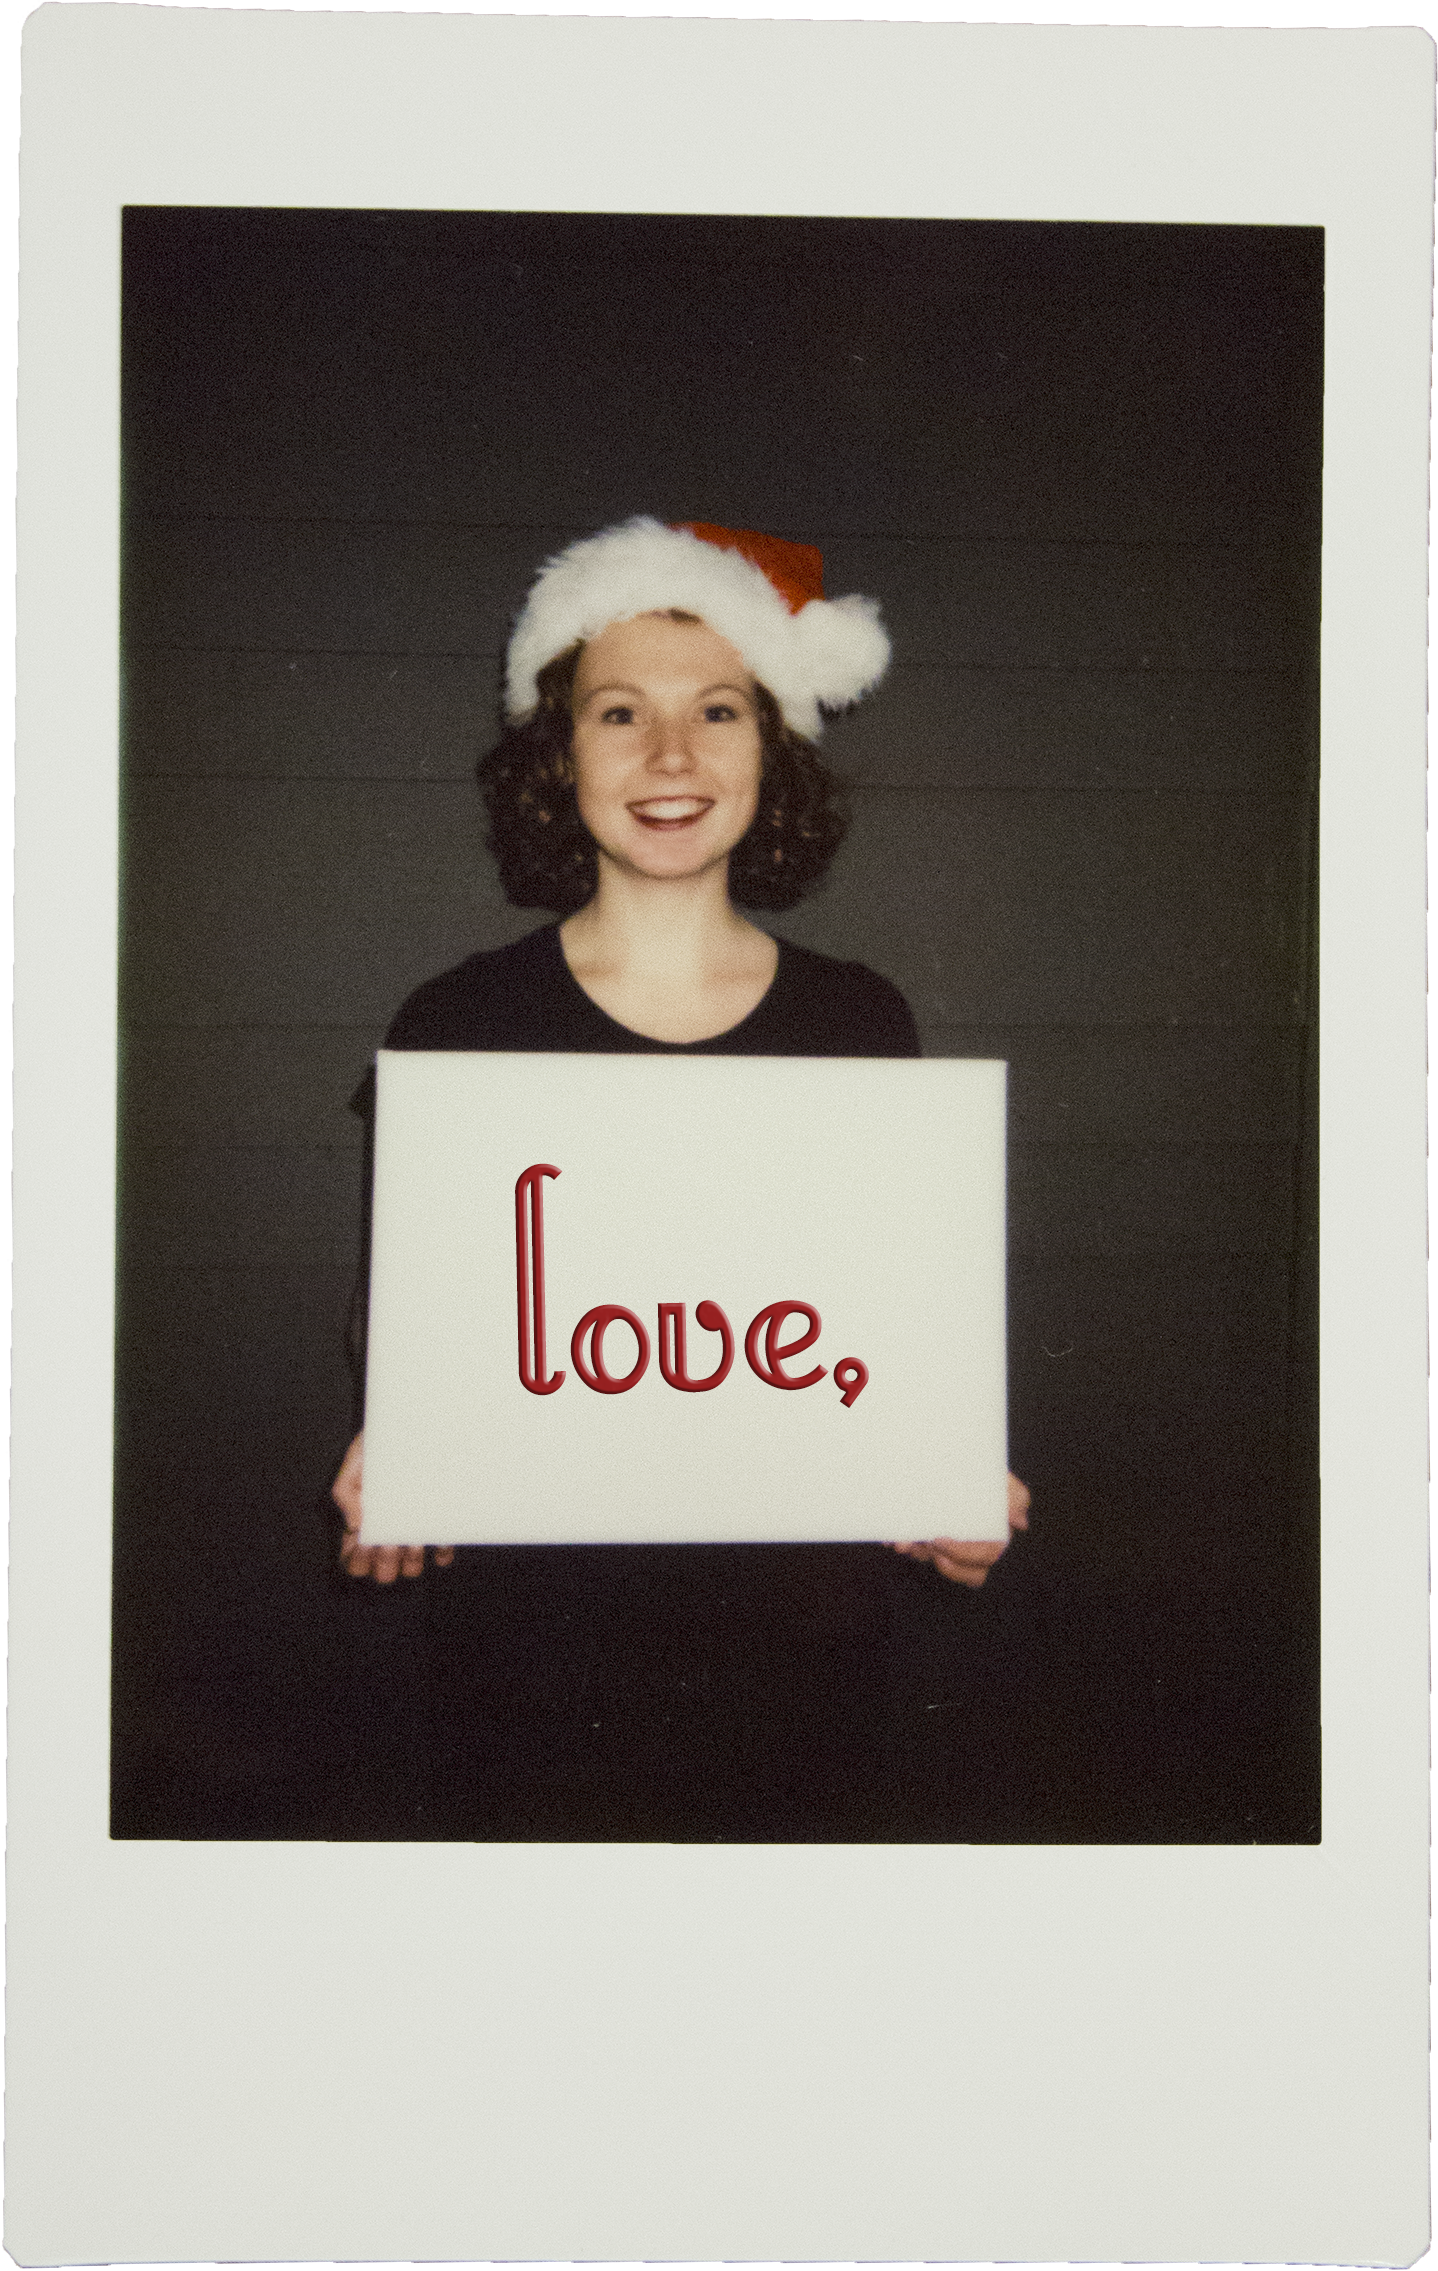 Hailey_Love_poloroid.png